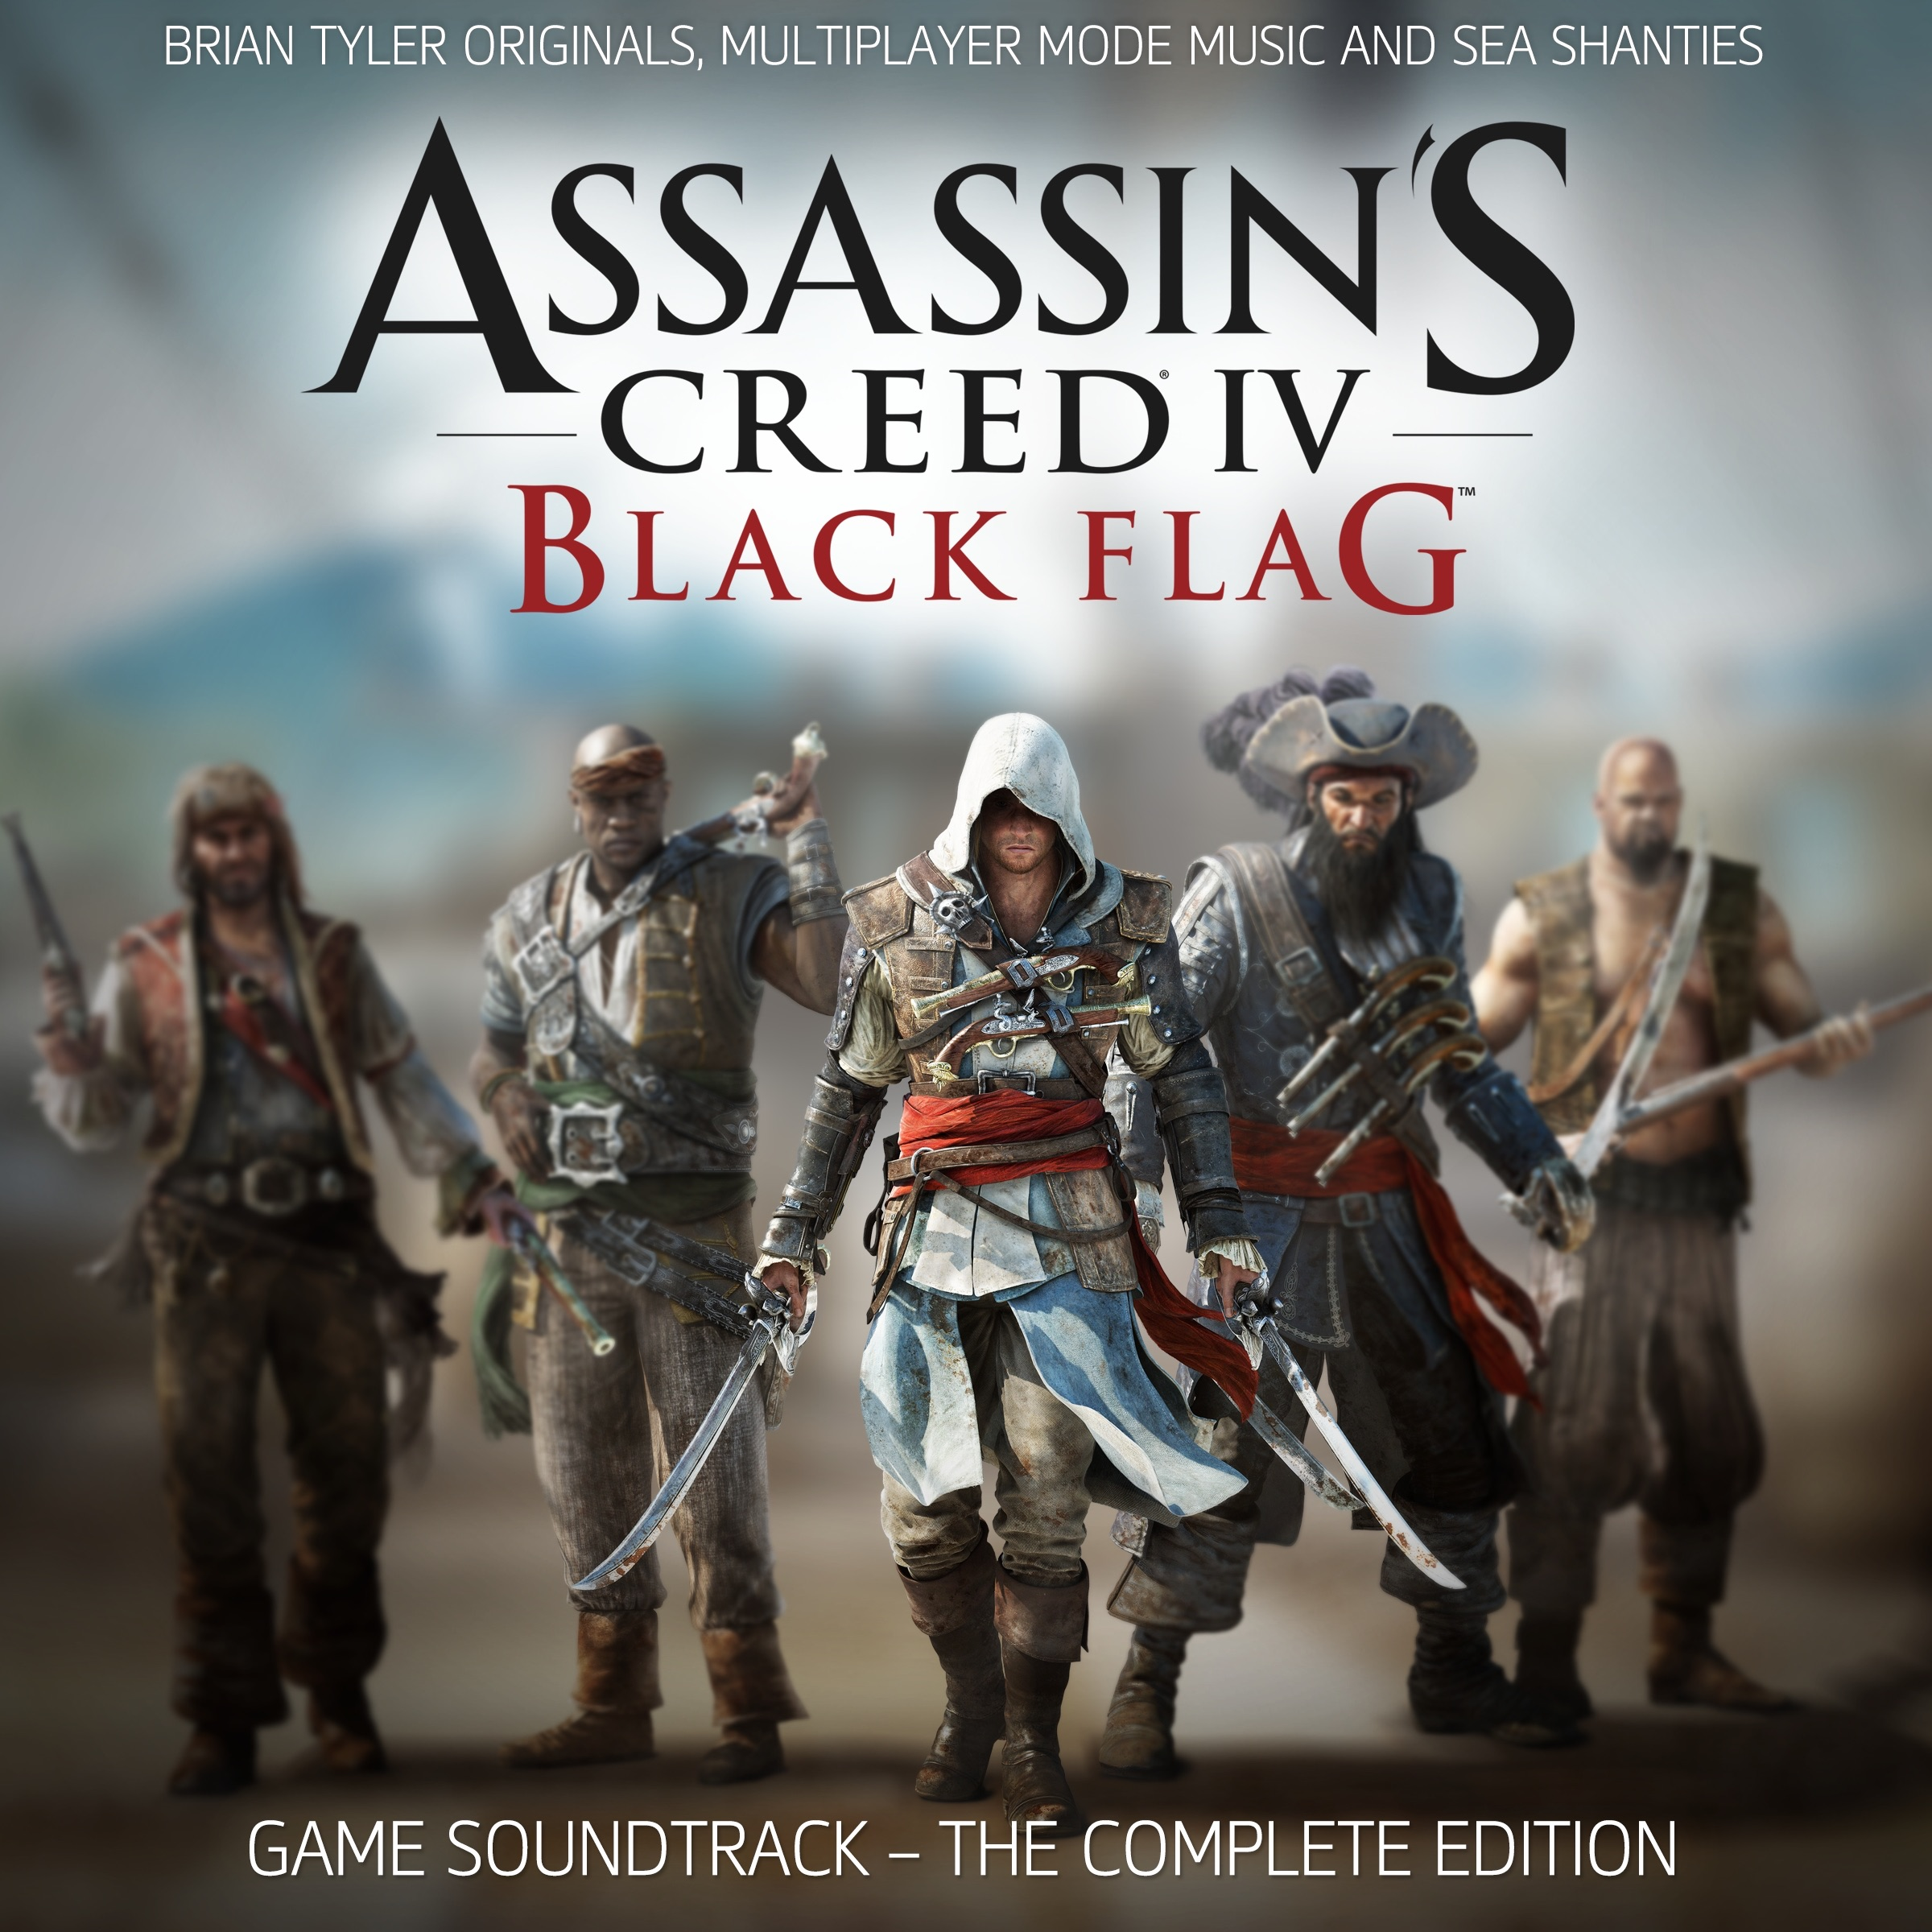 Under the Black Flag by Brian Tyler